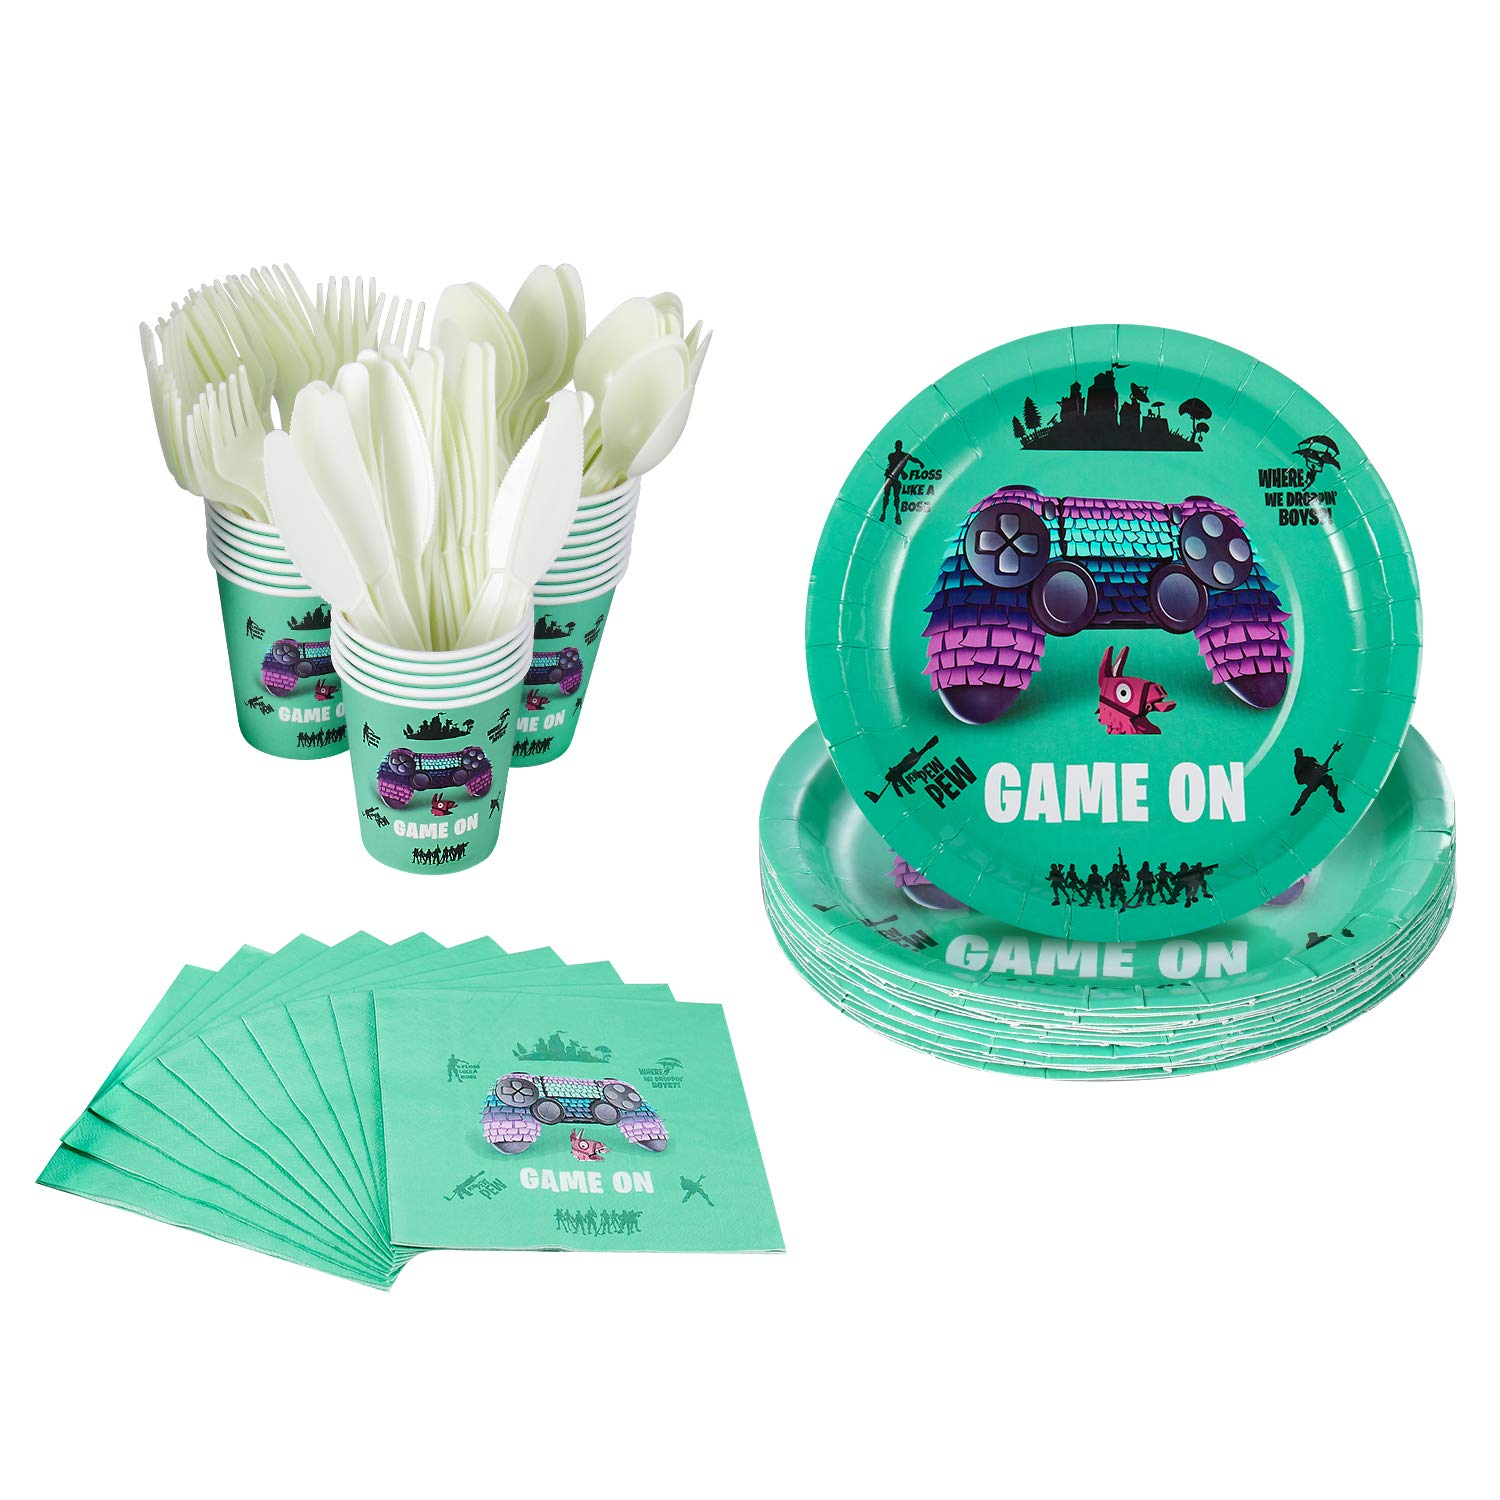 120 Pcs Video Game Party Supplies - Serves 20 - Includes Plates, Knives, Spoons, Forks, Cups and Napkins for Birthday Party Pack for Kids Video Game Themed Party